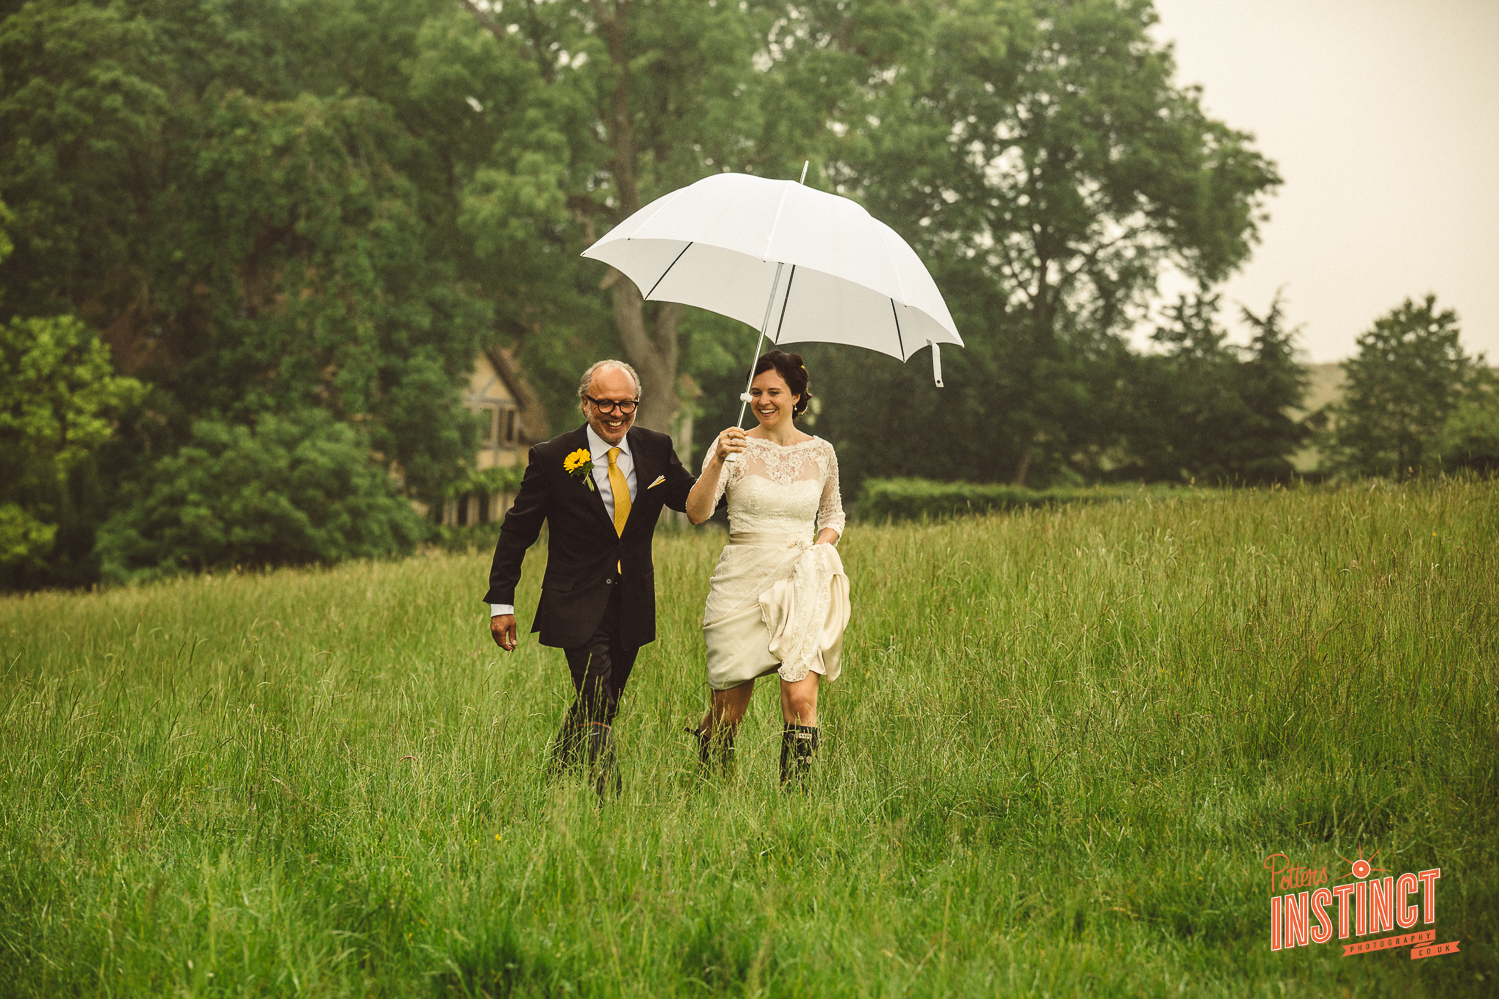 Father and his daughter on a rainy wedding day walking across a field